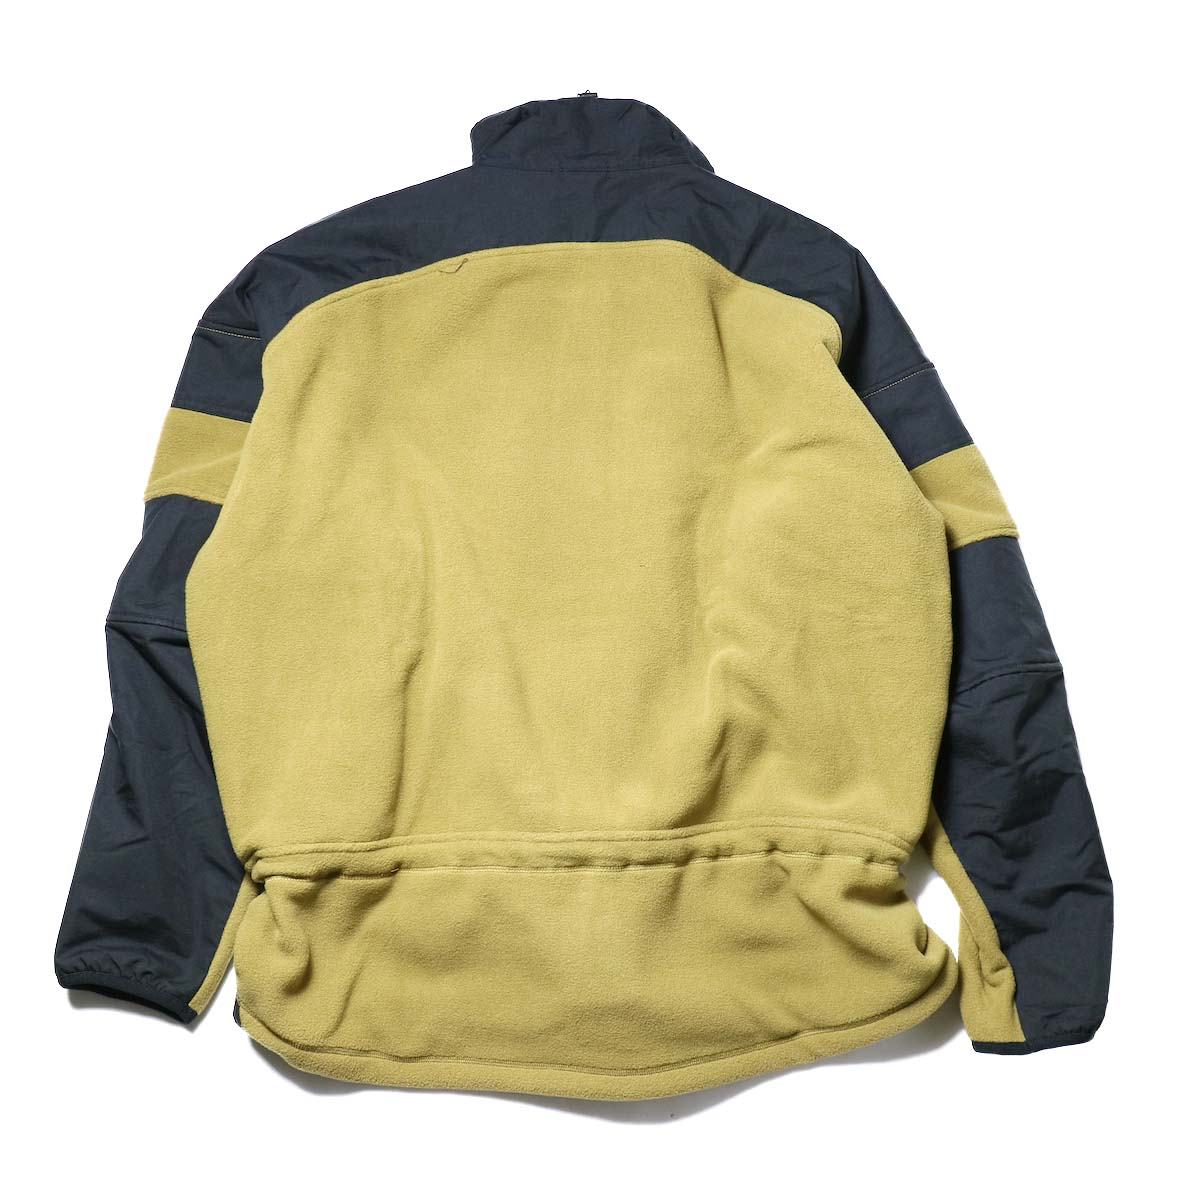 Marmot Histric Collection / Alpinist Tech Sweater (Coyote×Black)背面